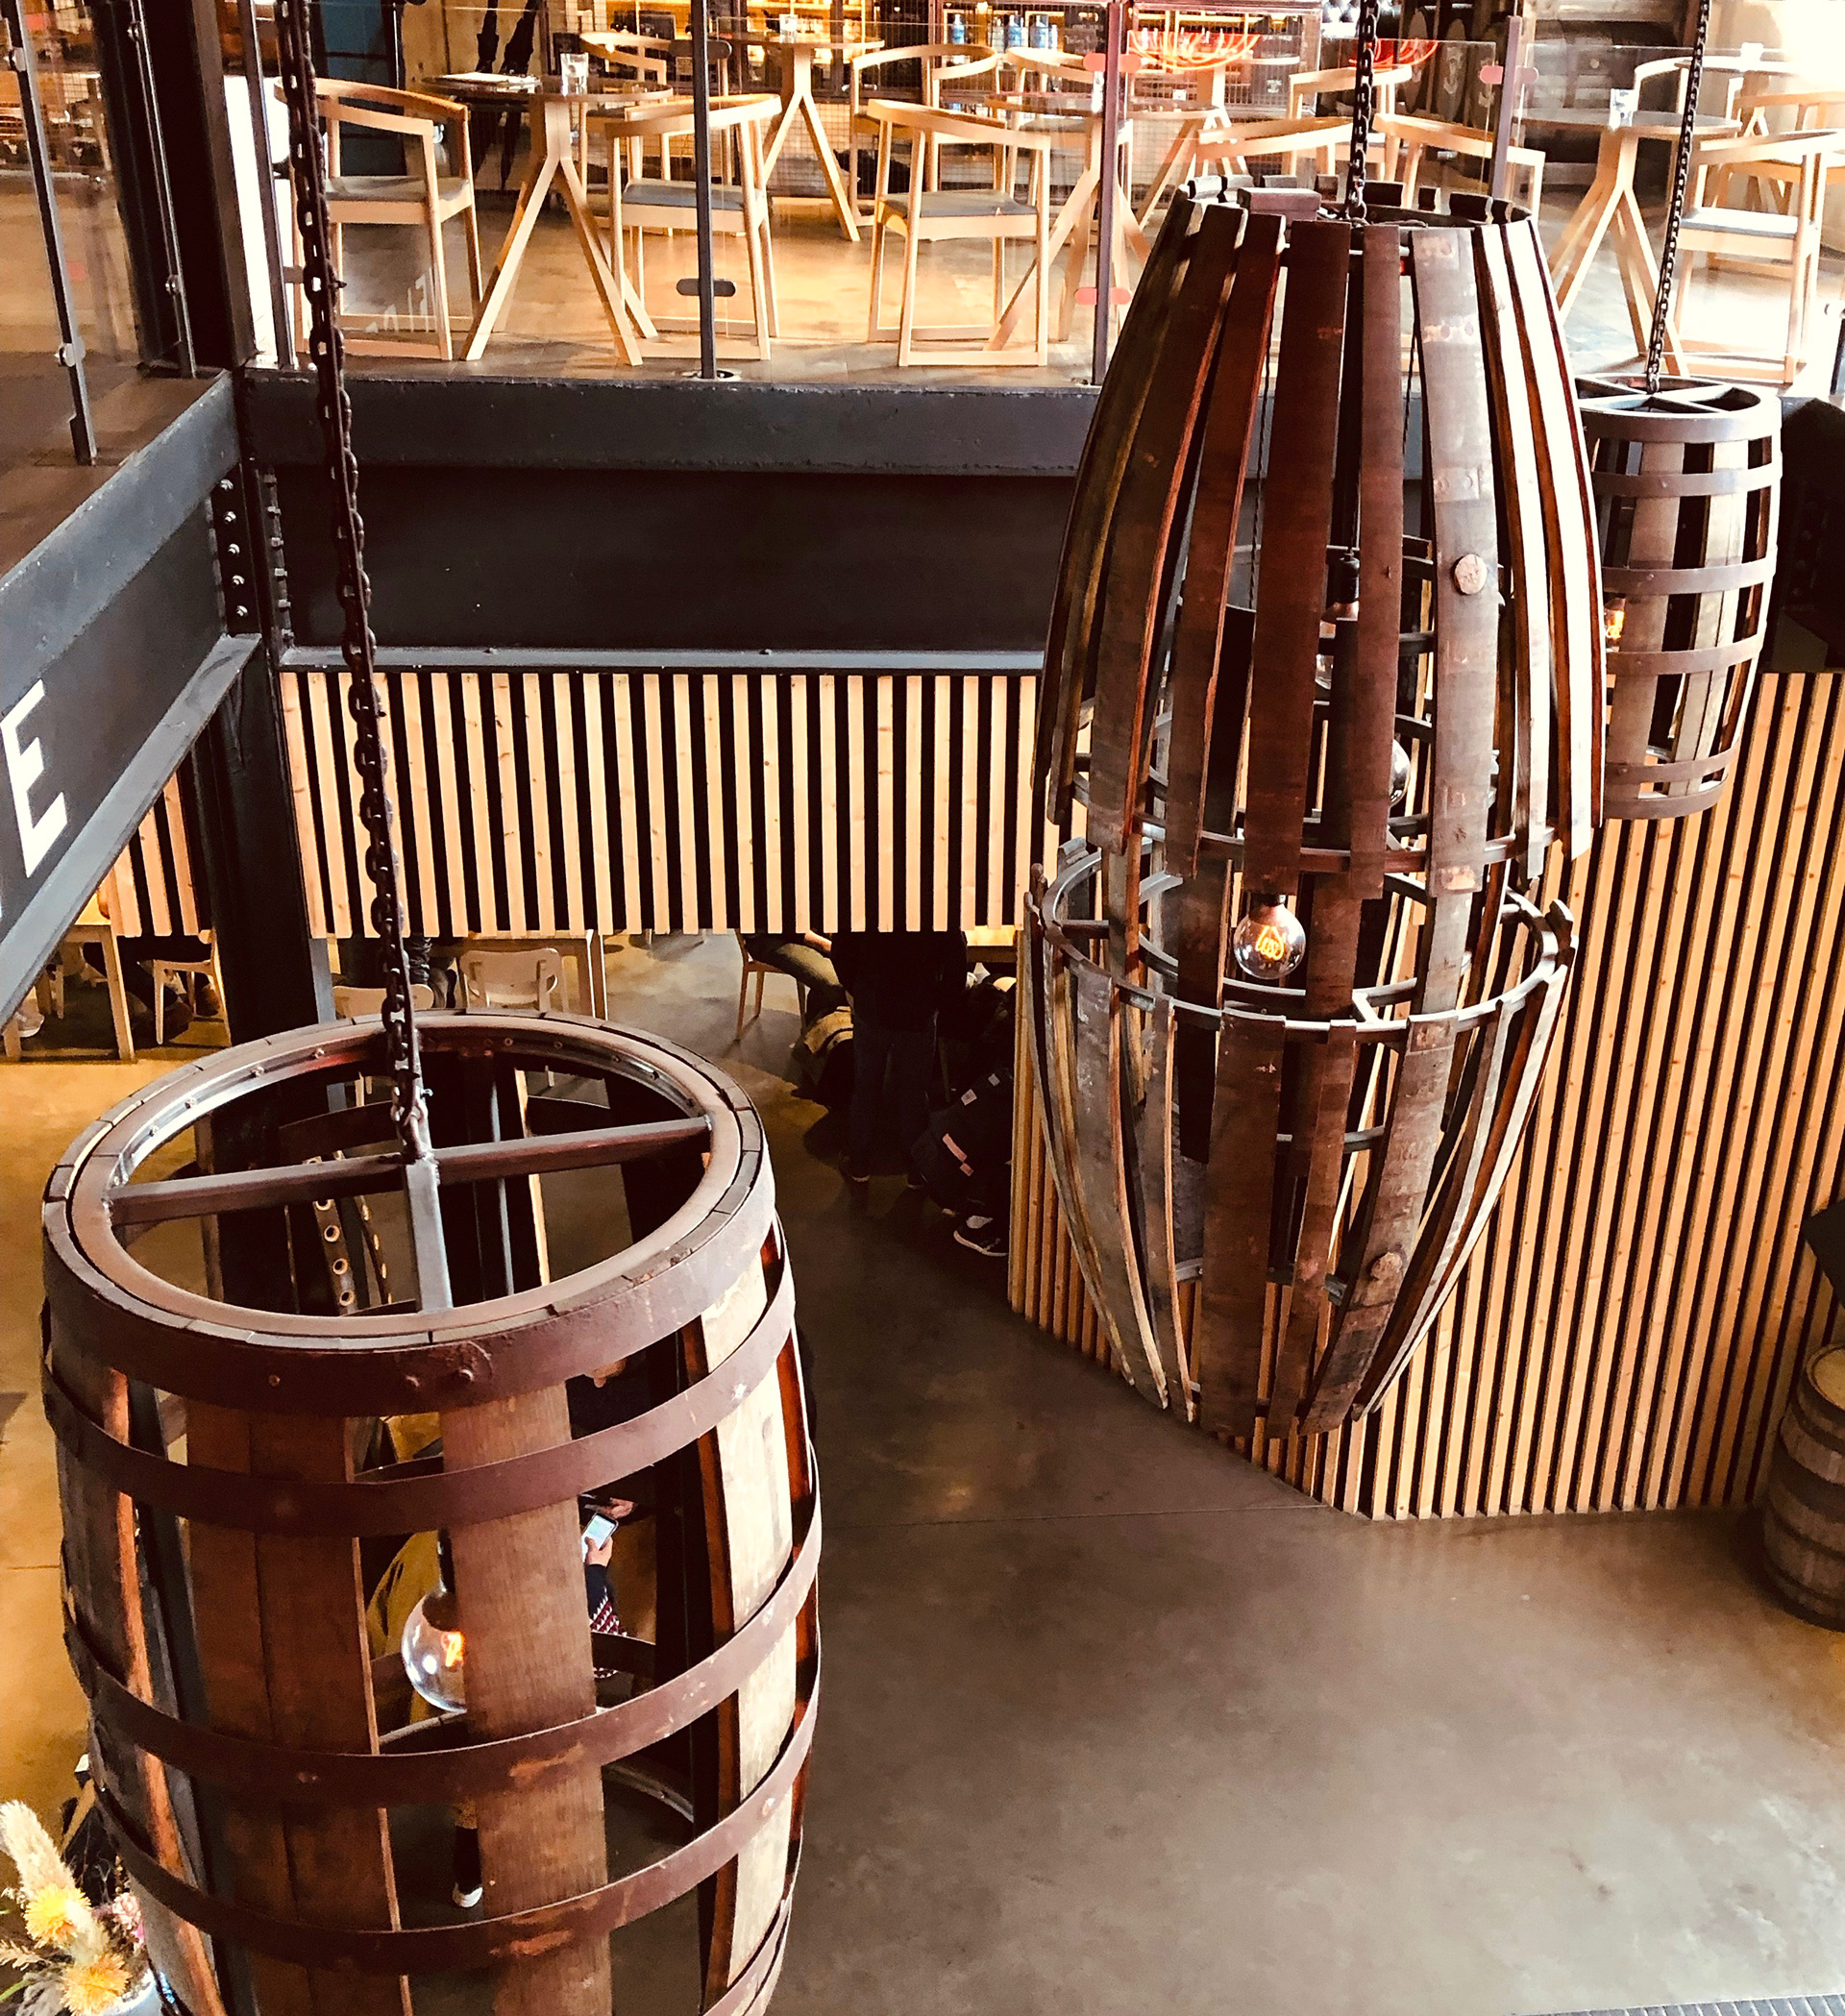 Old whiskey barrels fashioned as light fixtures at the Teeling Distillery | Dublin | STIRworld